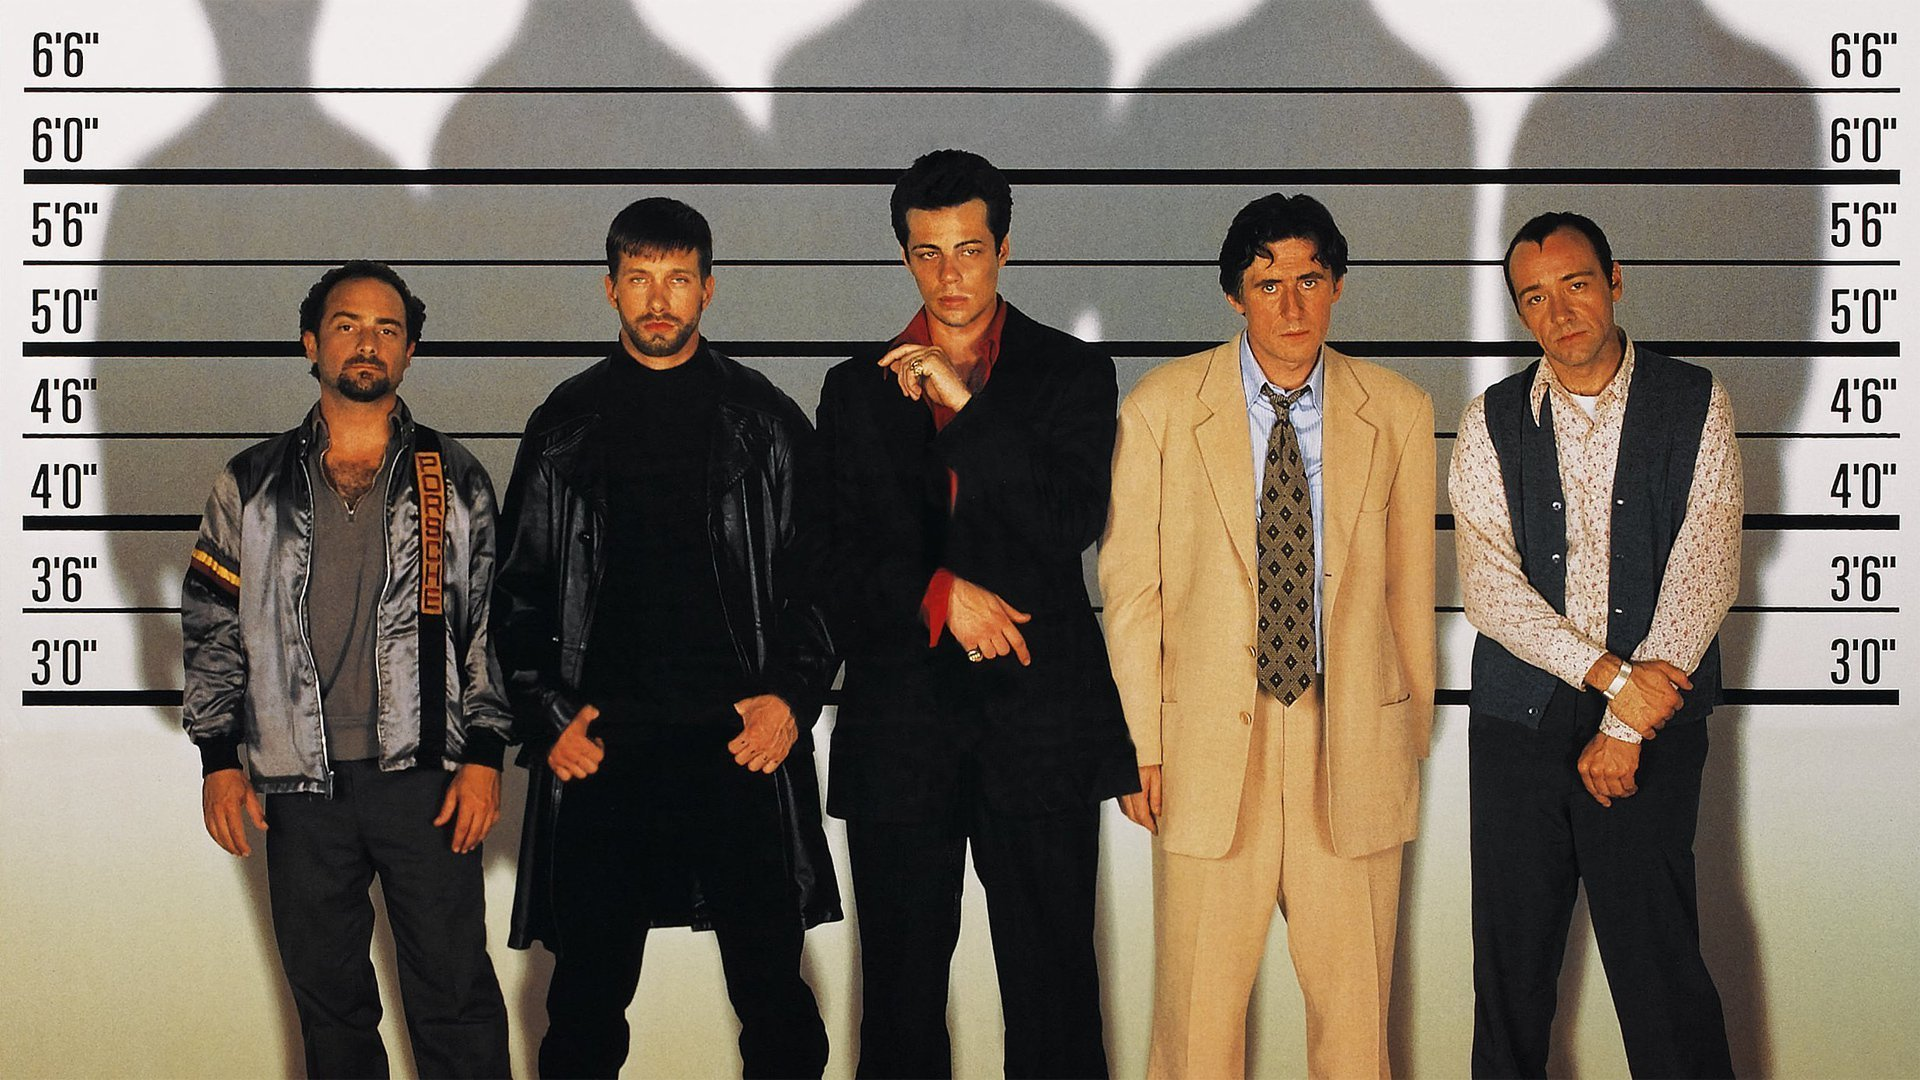 The Usual Suspects (1995) – Olağan Şüpheliler Film Analizi